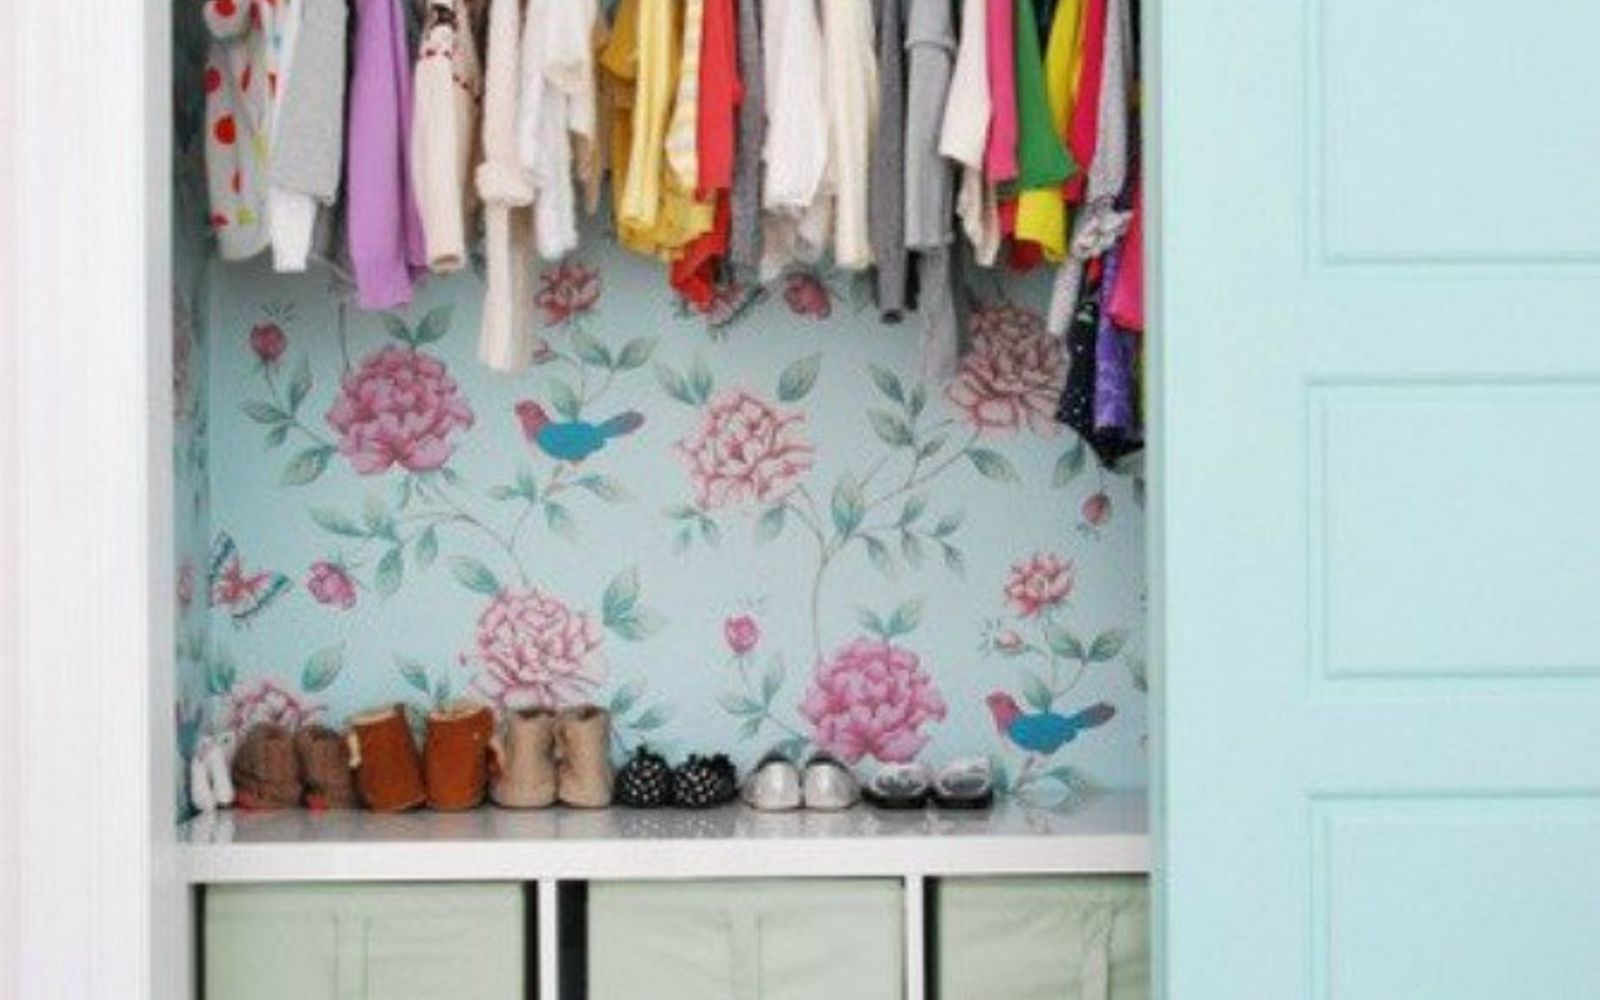 s 20 ways you never thought of using wallpaper, wall decor, Make your closet more exciting